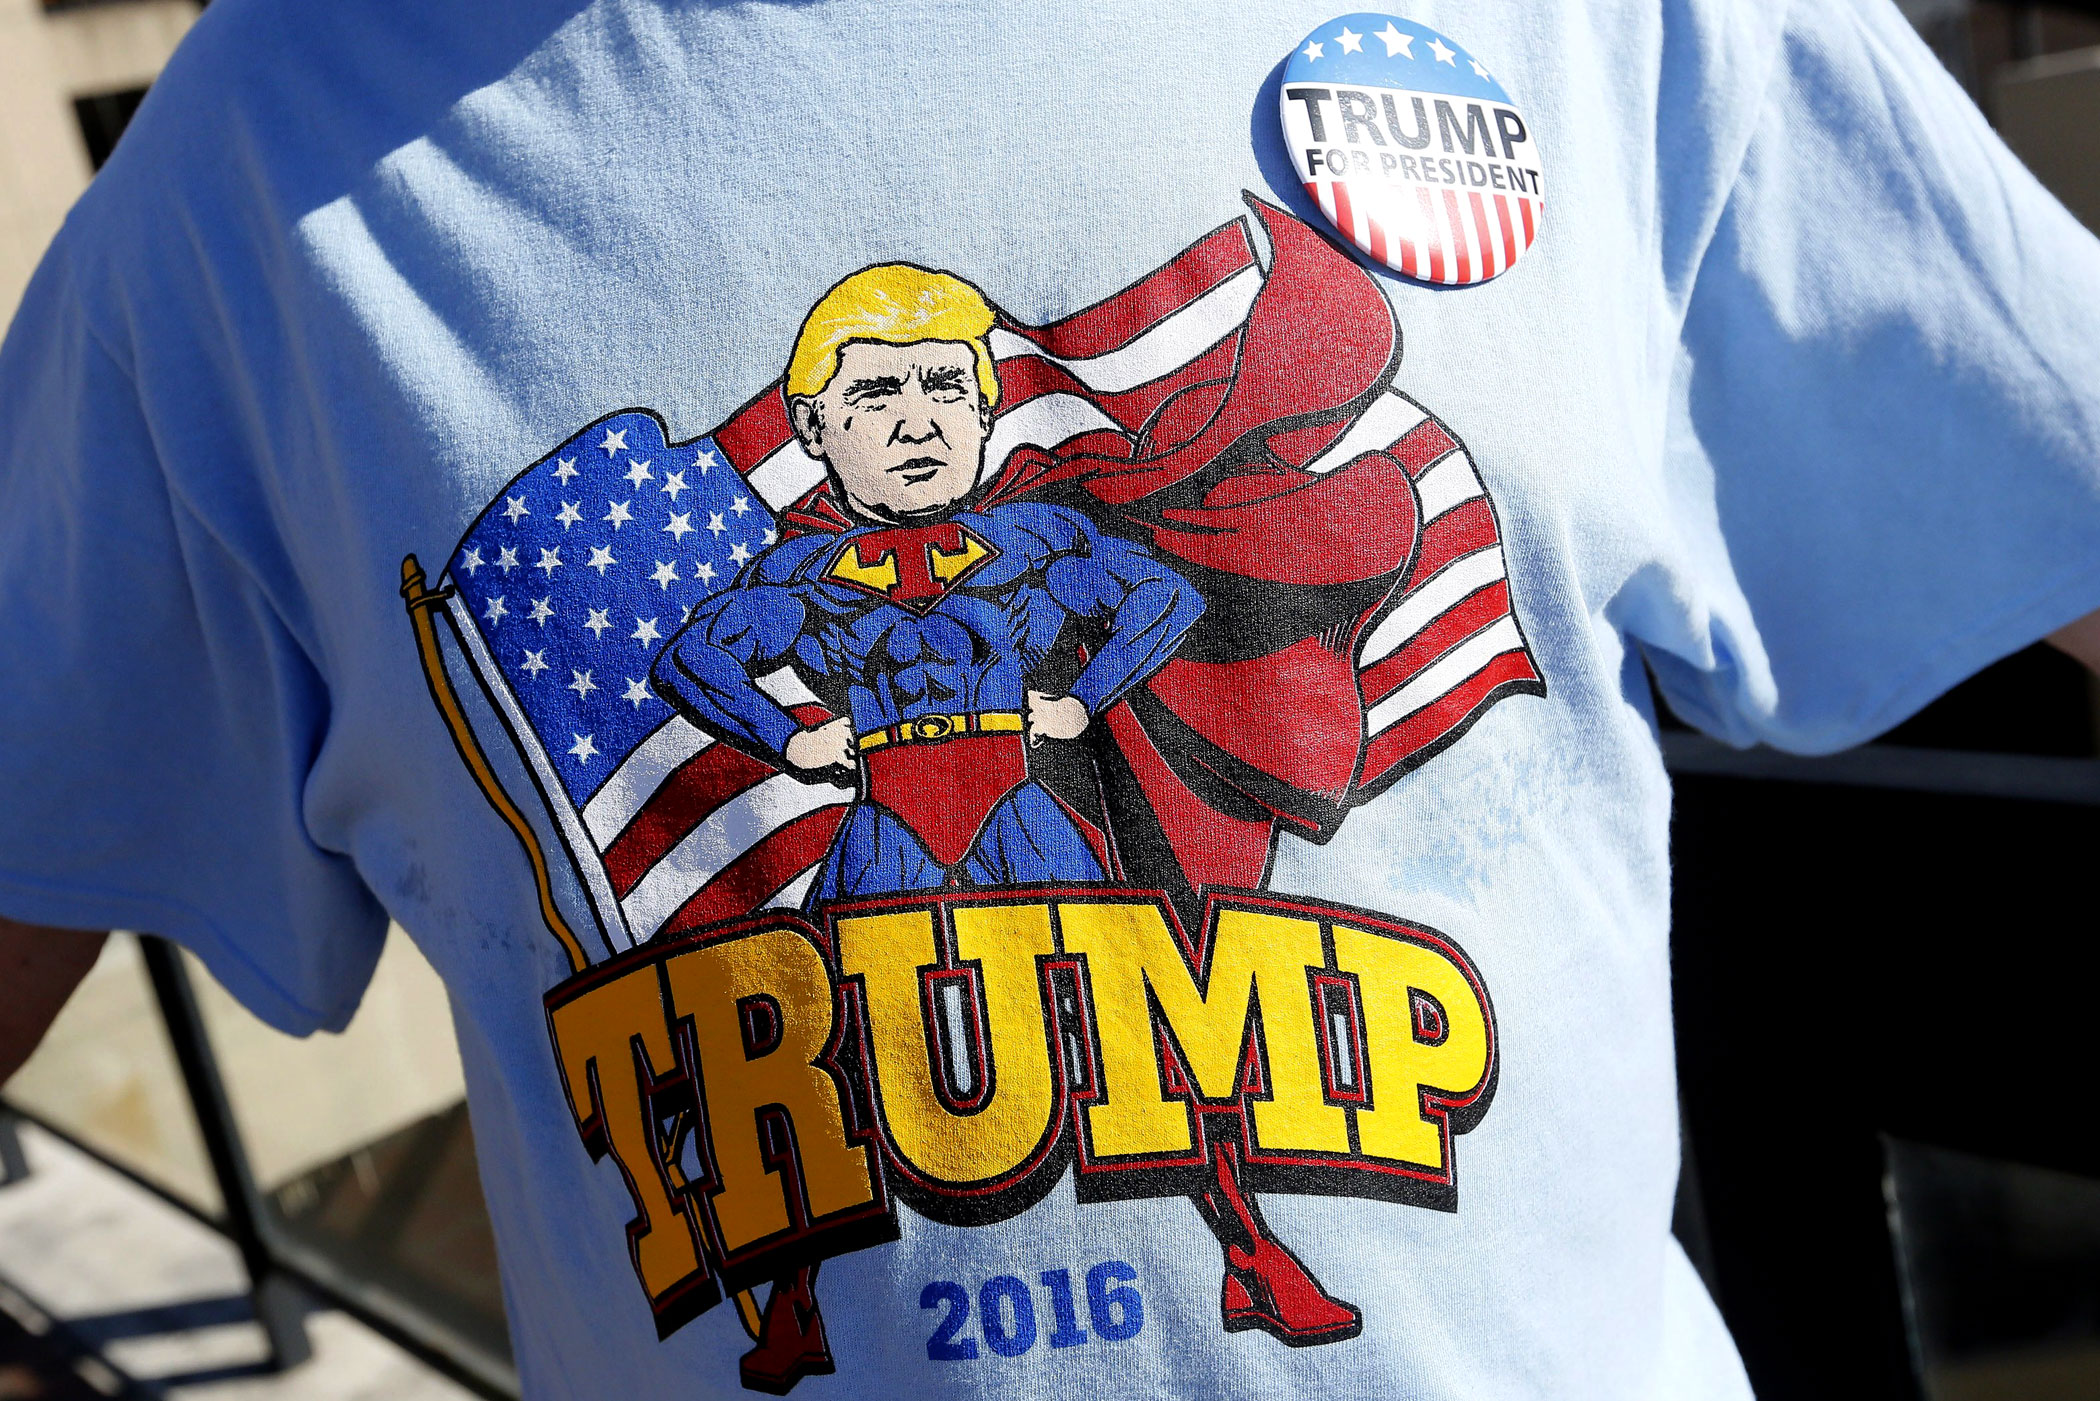 A supporter of Republican presidential candidate Donald Trump attends a rally in Baton Rouge, La. on Feb. 11.